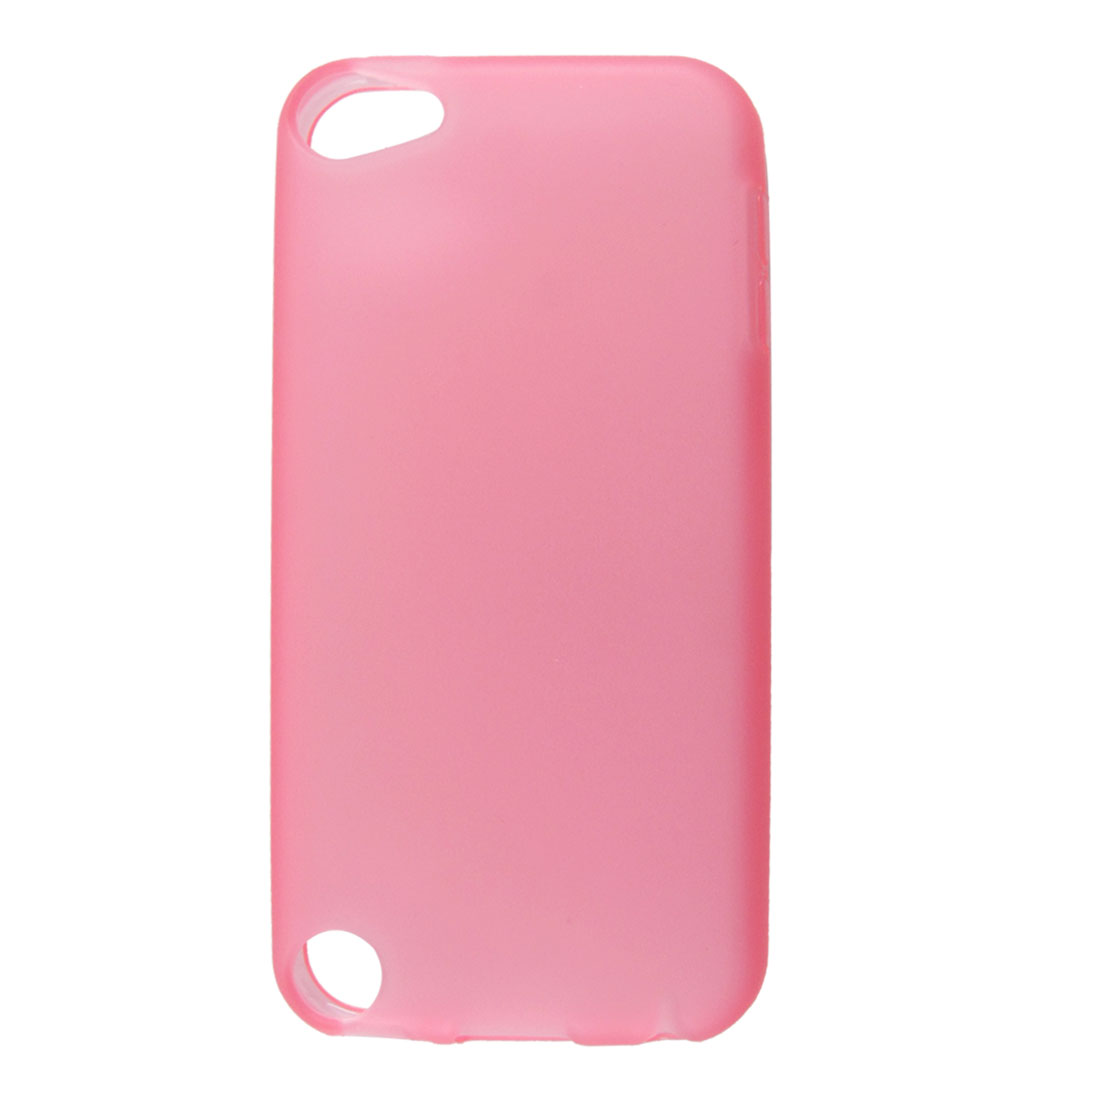 Pink Soft Plastic Case Cover Protector for Apple iPod Touch 5 5th